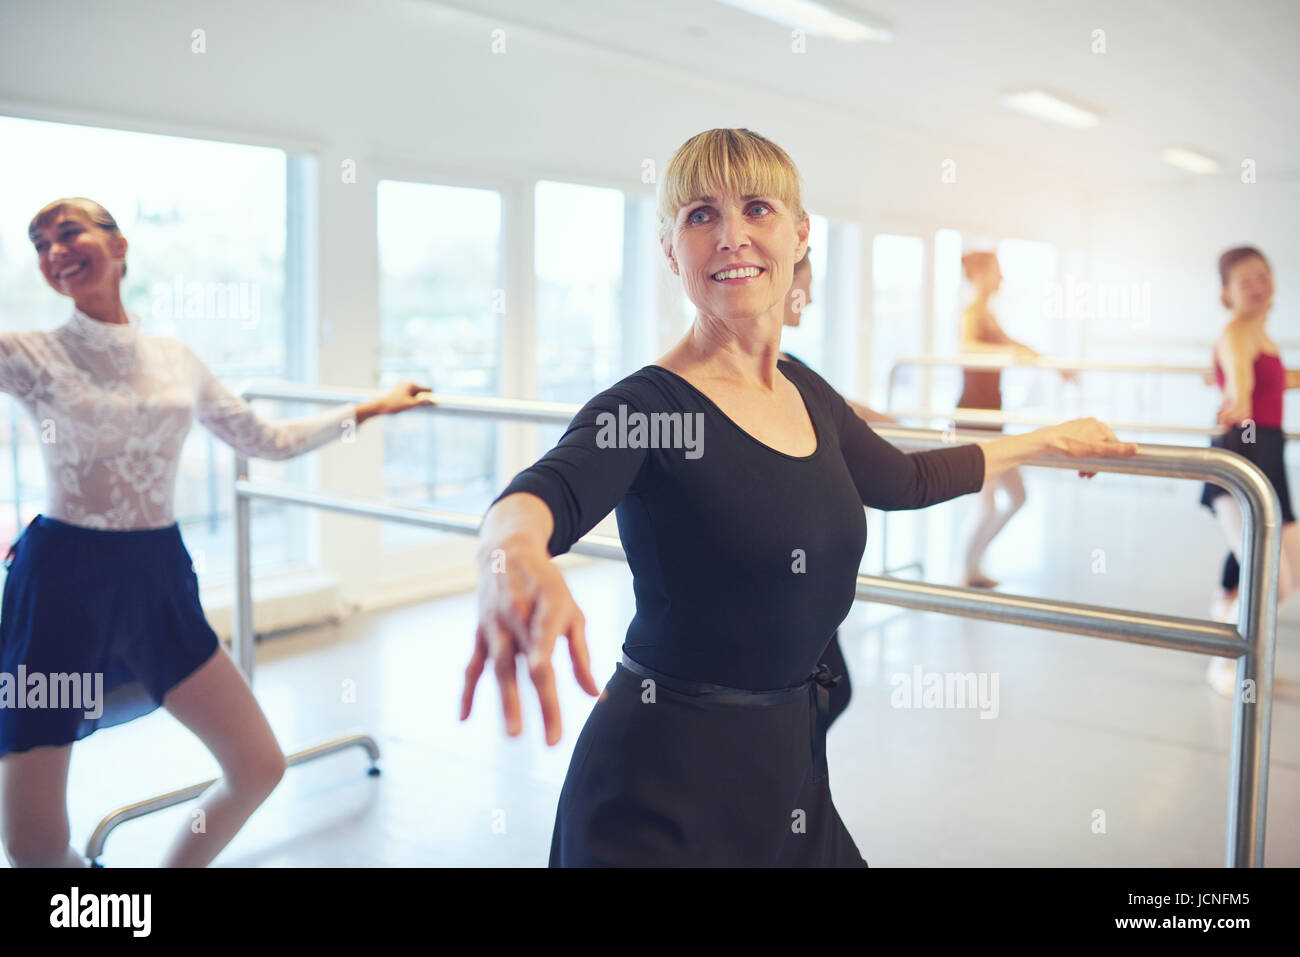 Smiling adult ballerinas standing and doing exercises in ballet class. - Stock Image